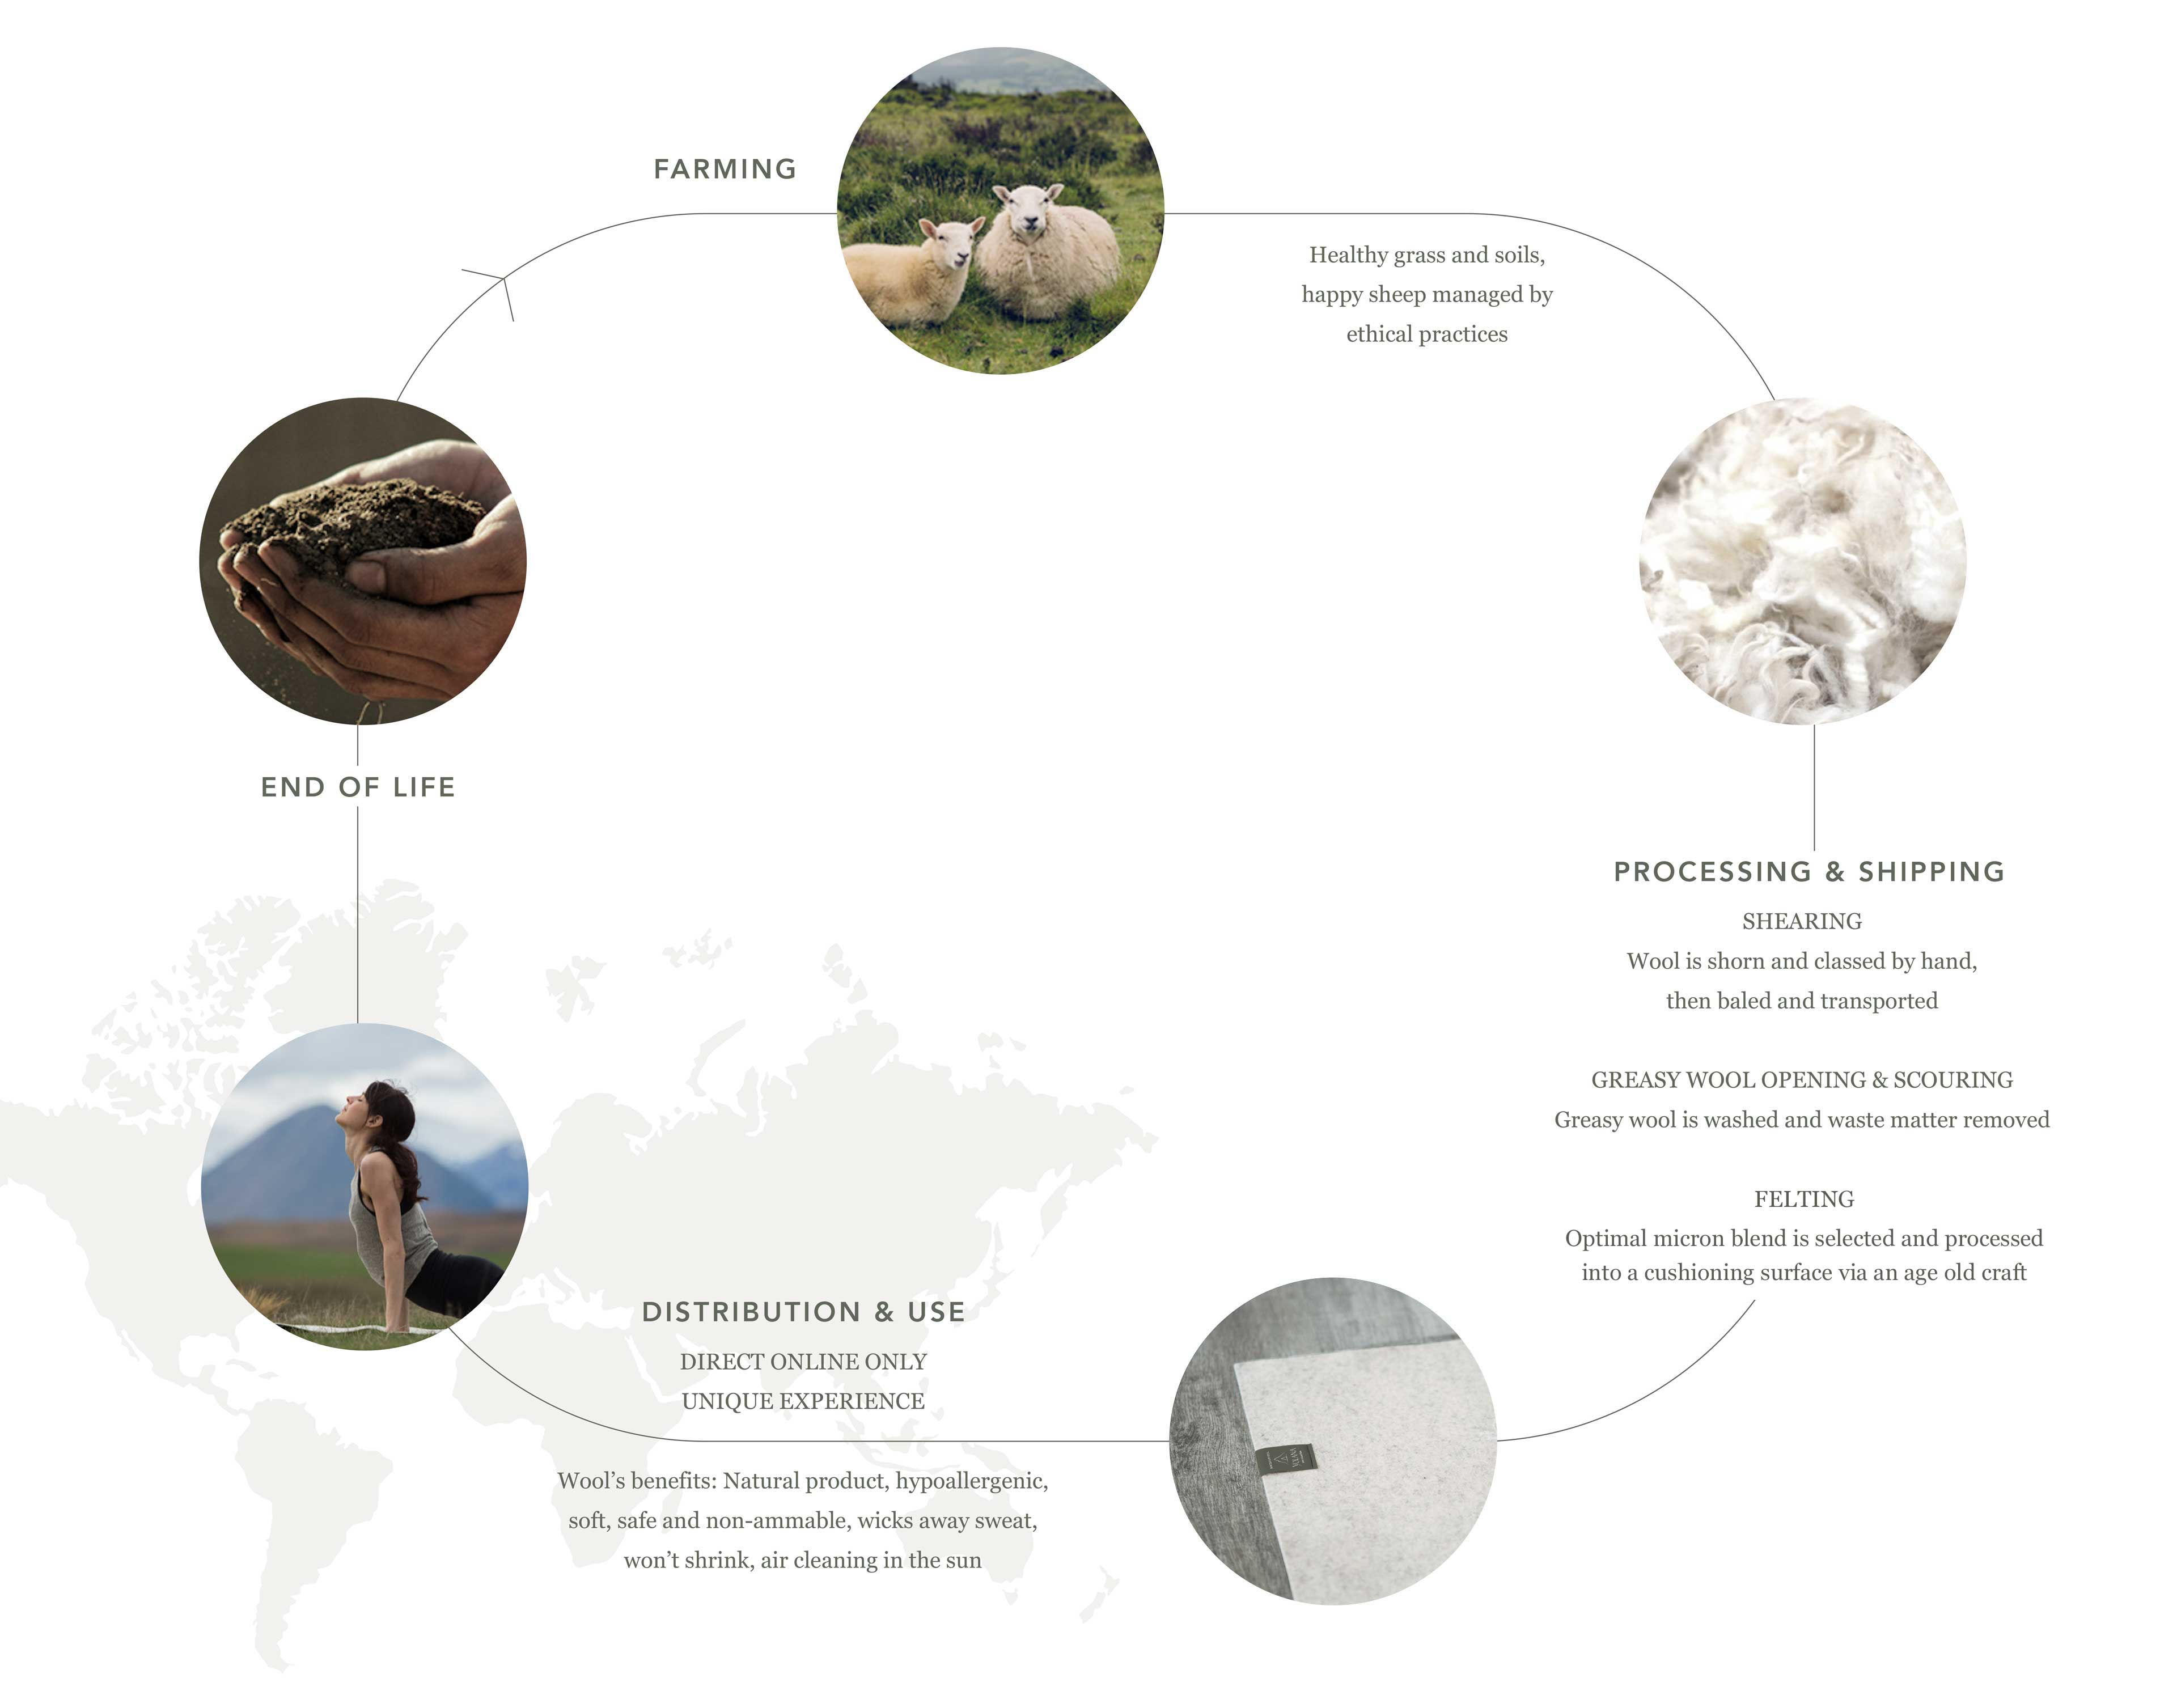 Why Wool Lifecycle Diagram